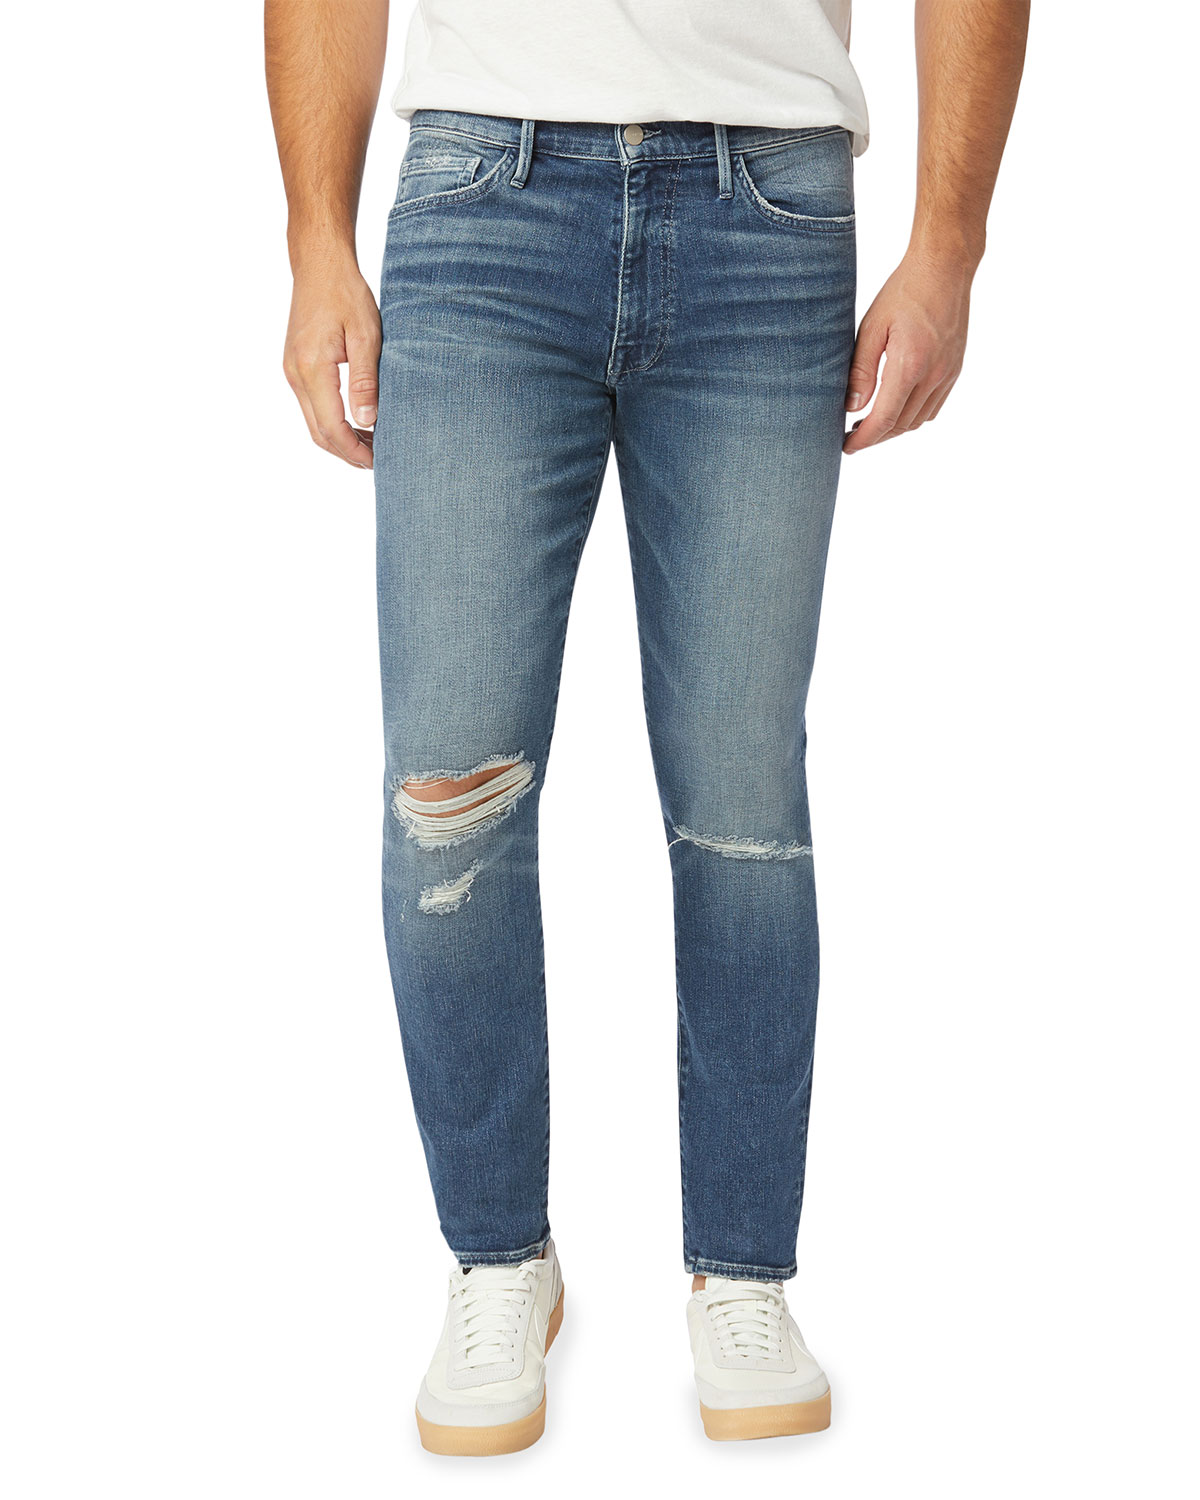 Men's Dean Soft Tapered Knee-Rip Jeans